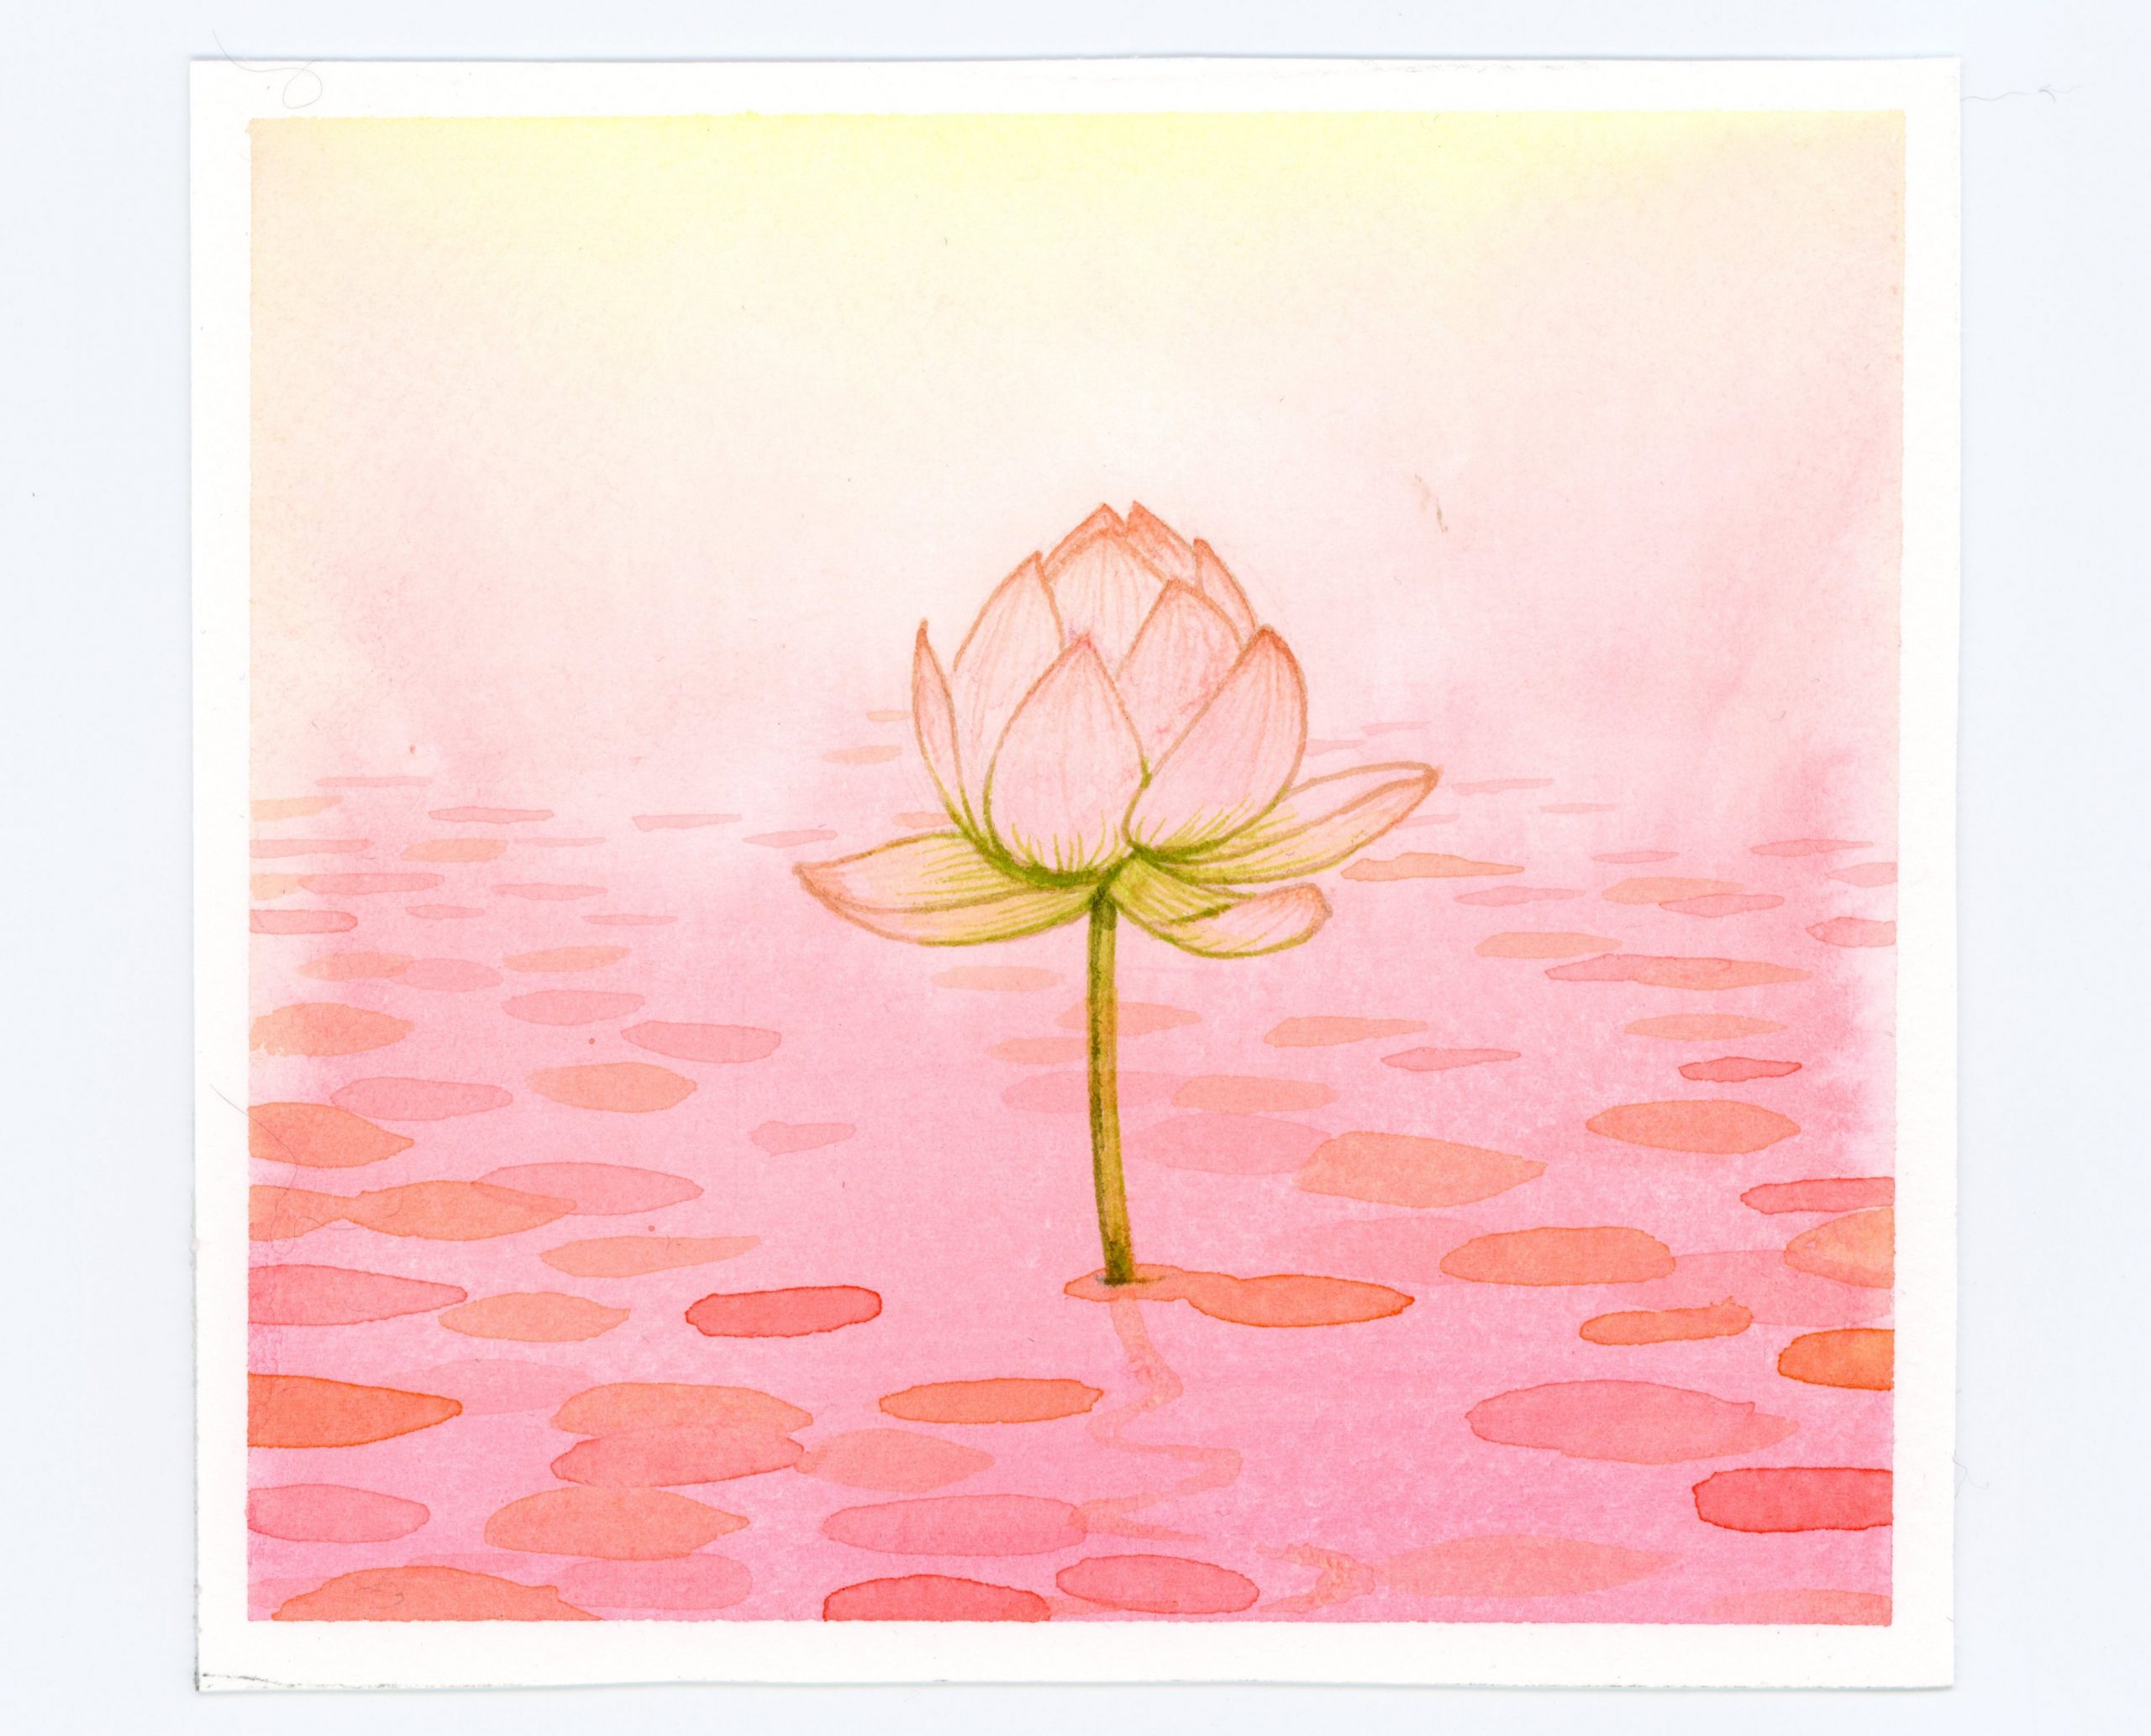 Peachy watercolor waterlily illustration